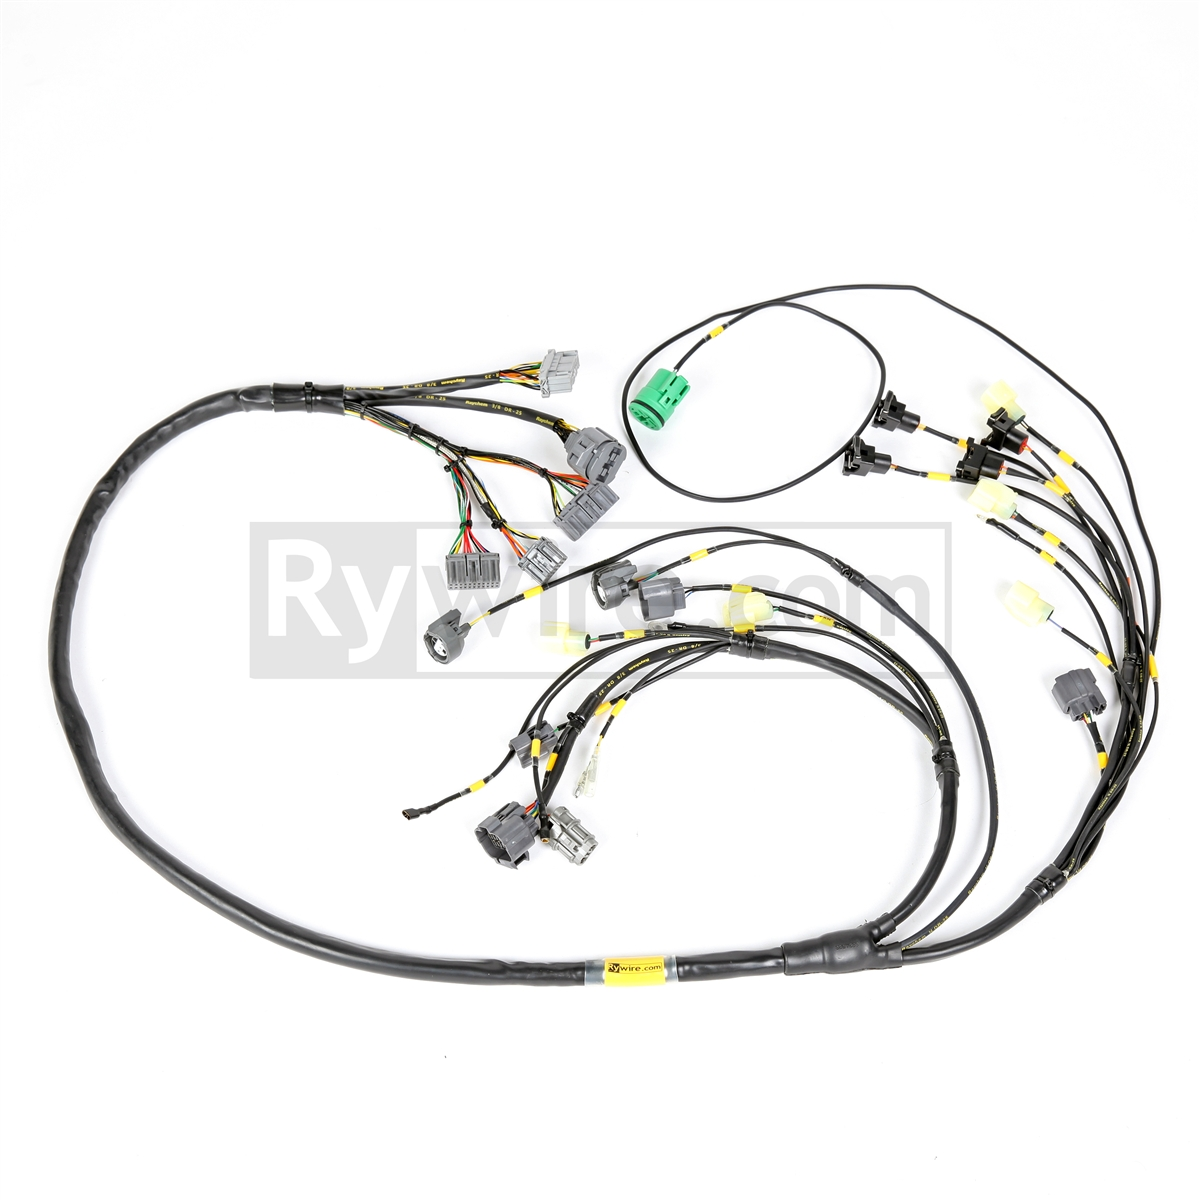 rywire com mil spec f series f20b h series h22 harness rh rywire com 97 civic wiring harness diagram civic wiring harness swap